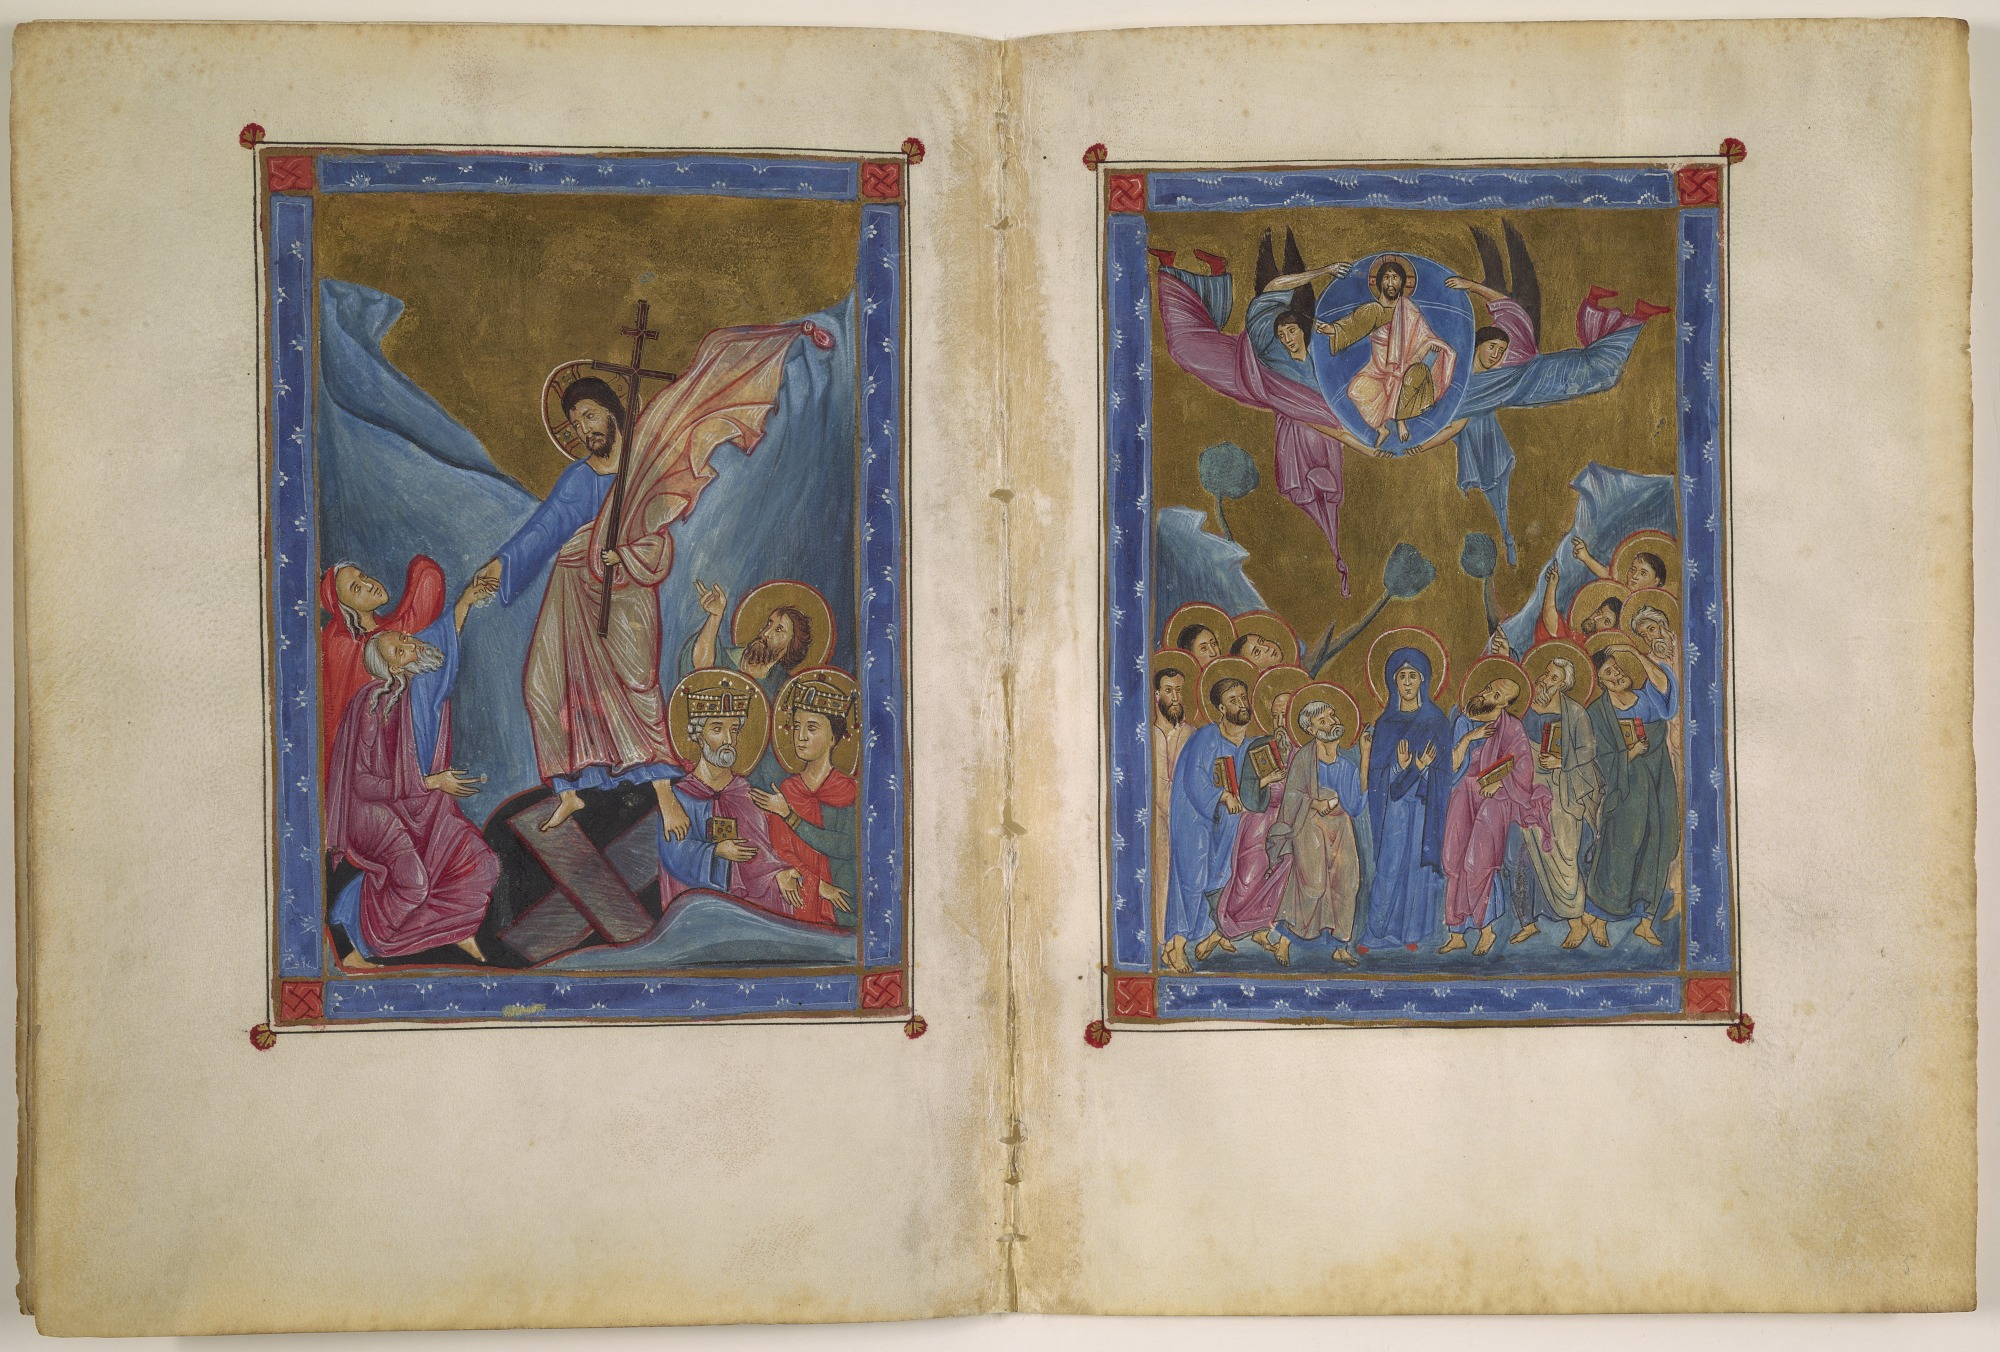 folios 4 verso and 5 recto: Descent into Hell and the Ascension from a Gospel according to Four Evangelists